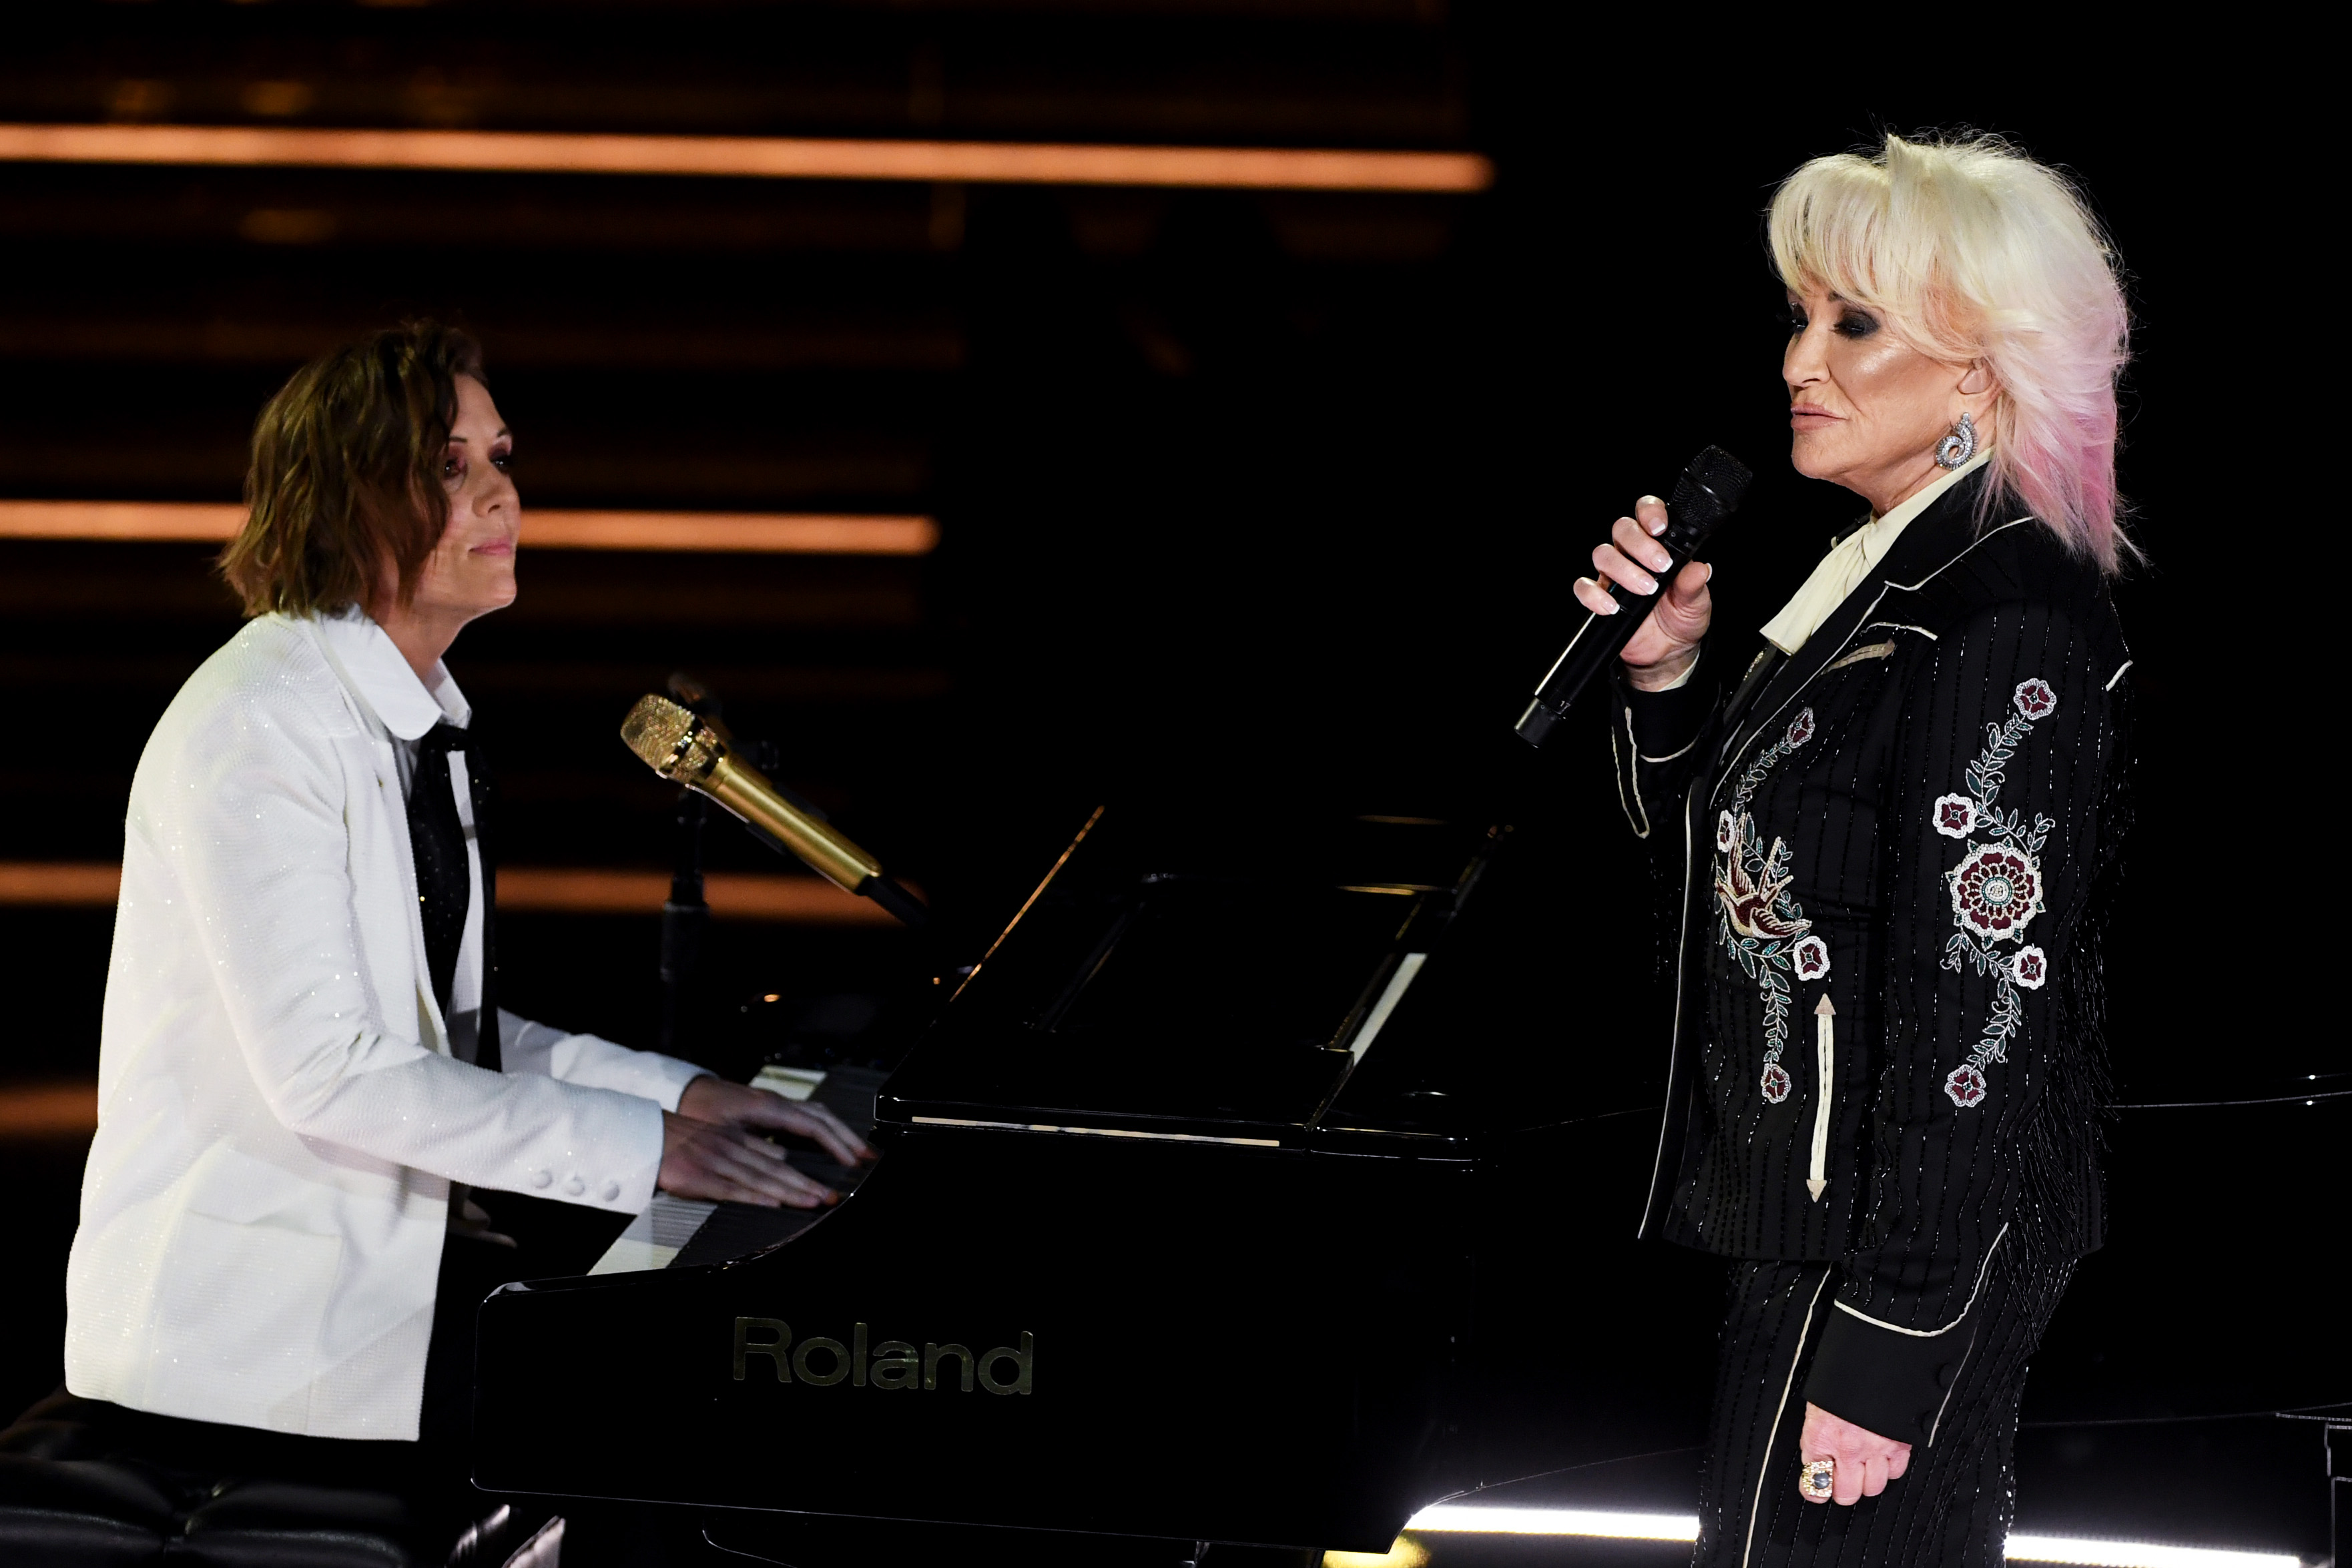 Brandi Carlile and Tanya Tucker perform onstage during the 62nd Annual GRAMMY Awards at STAPLES Center on January 26, 2020 in Los Angeles, California.